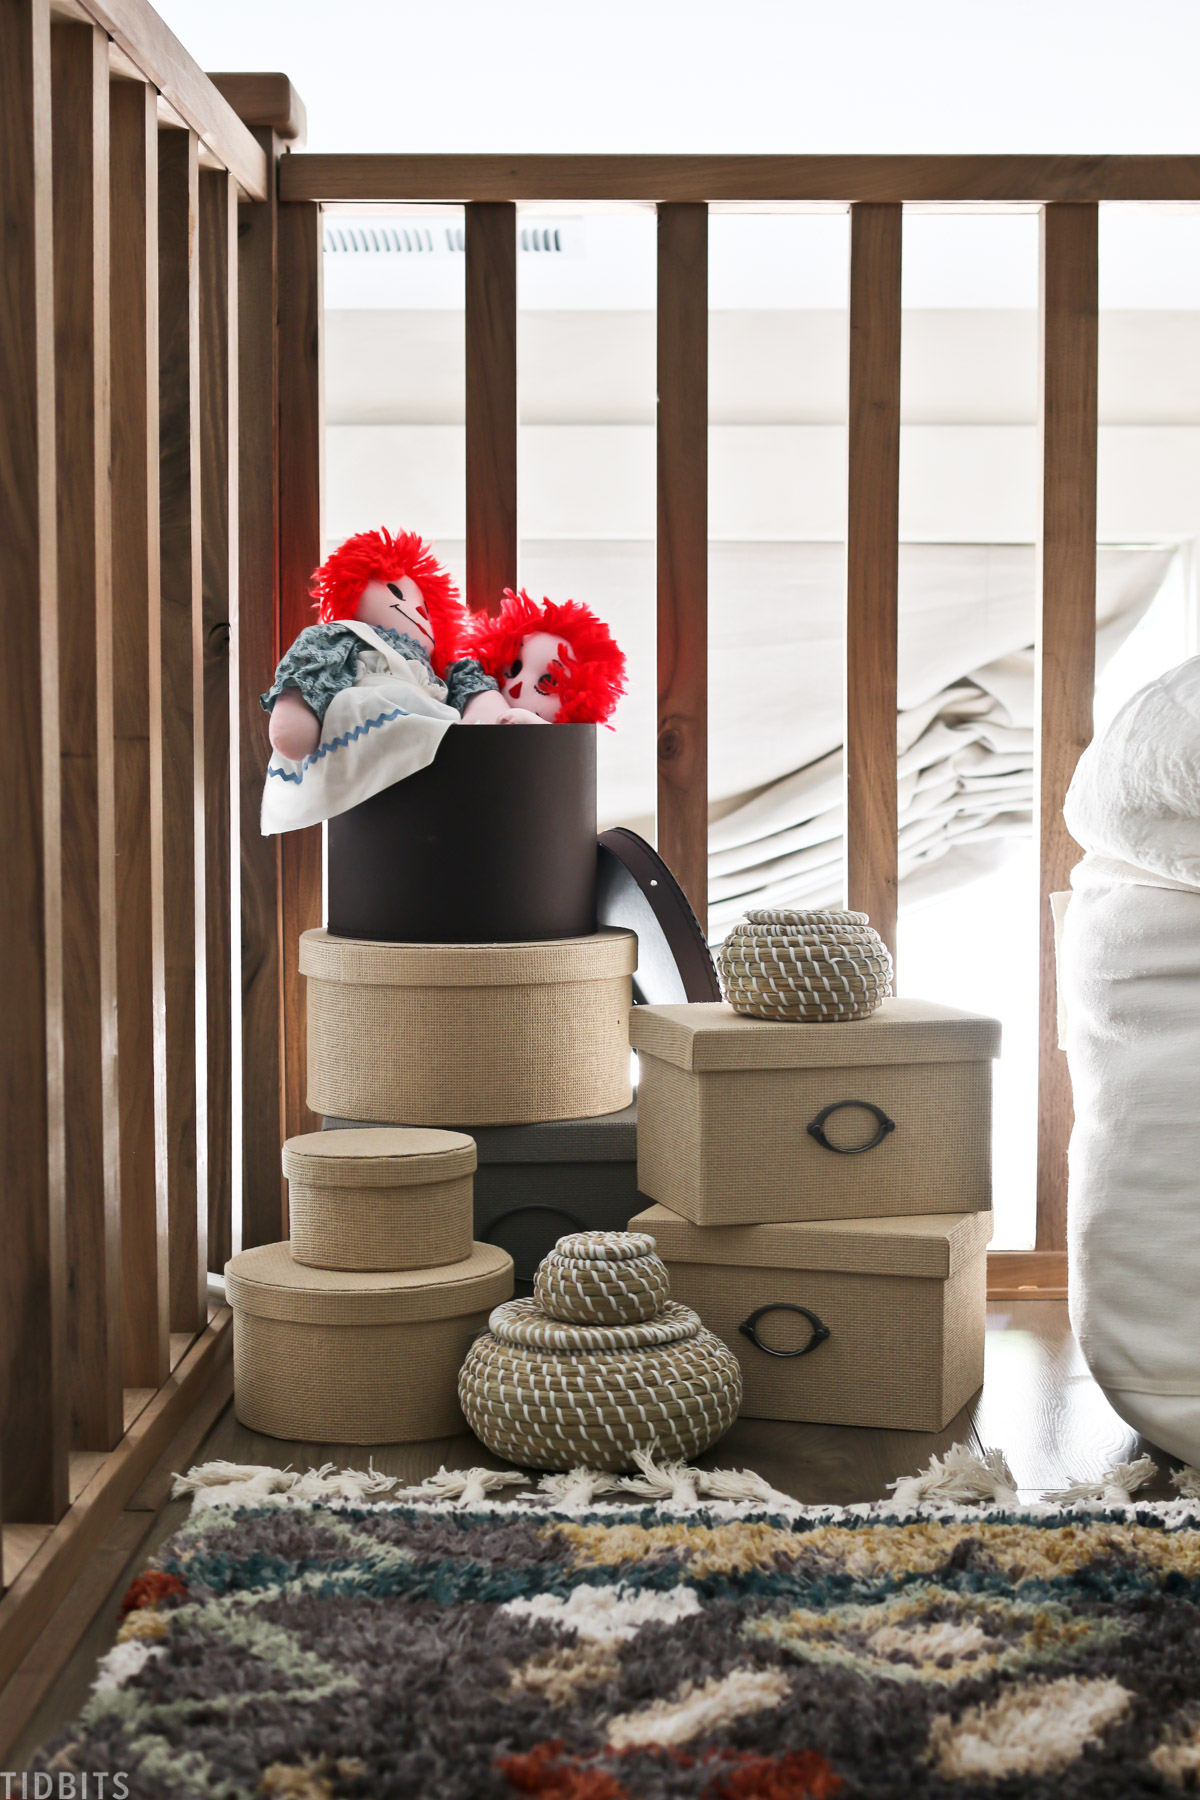 decorative storage baskets placed in the corner of a loft